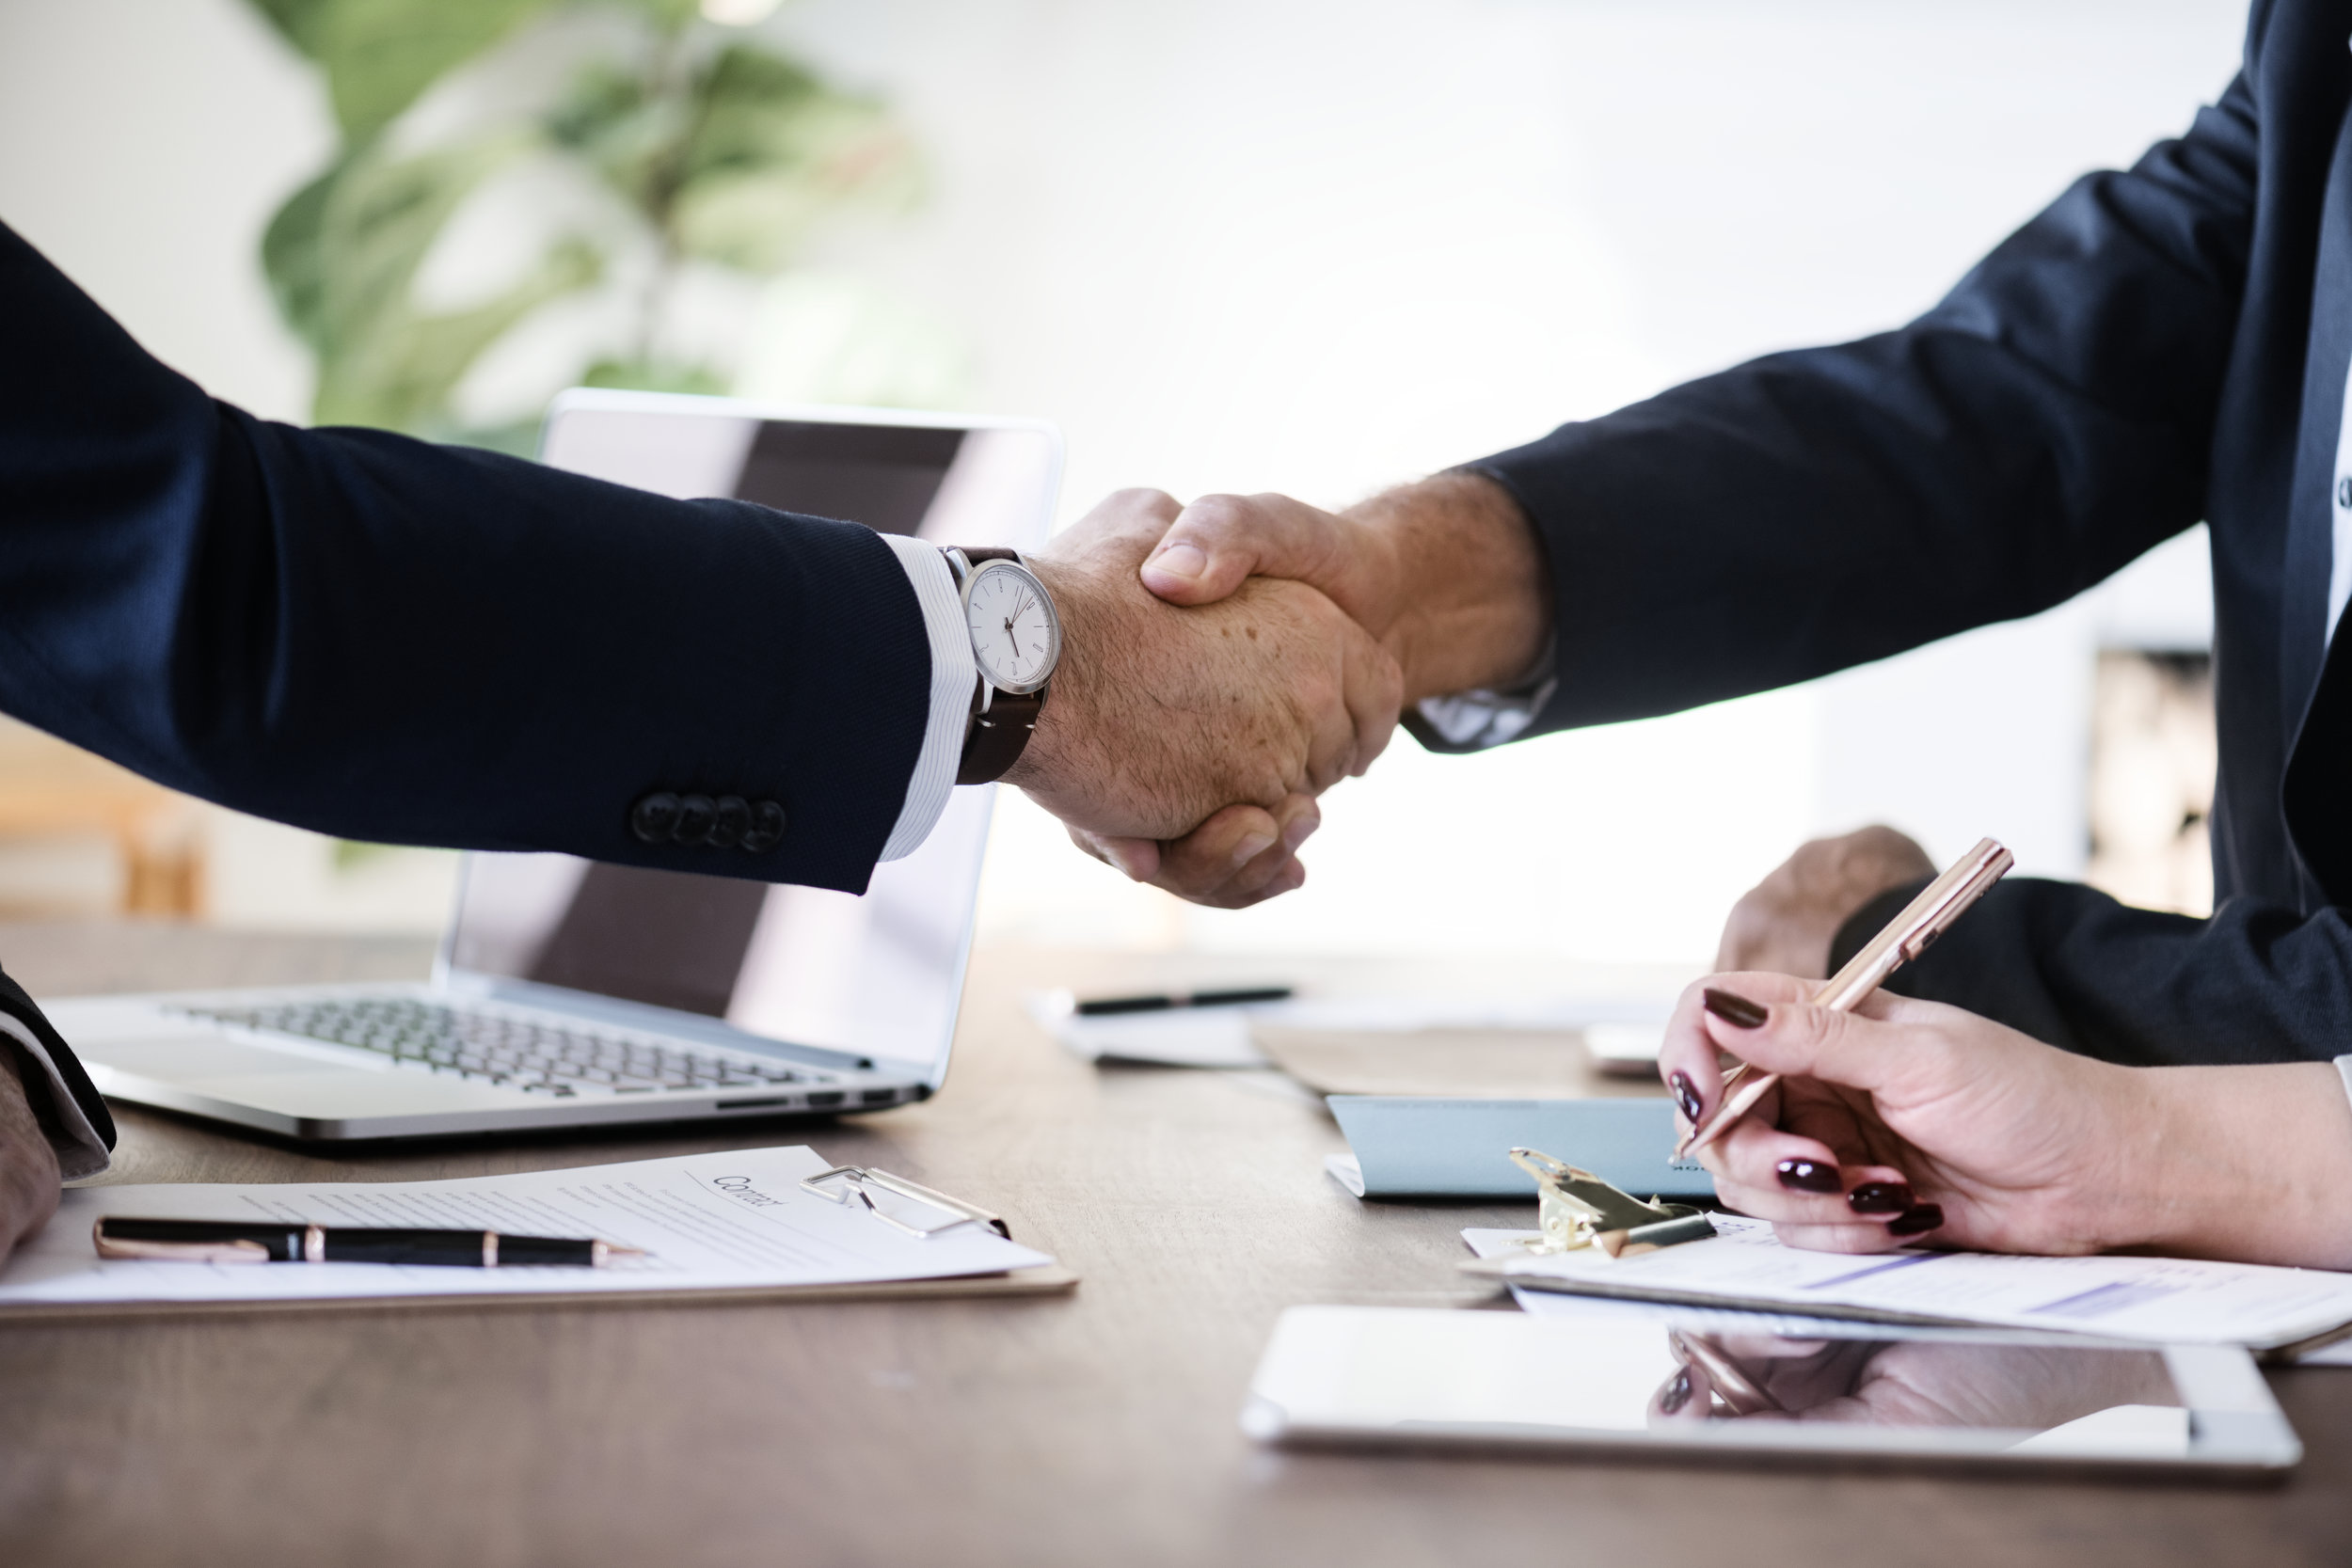 Mergers & Acquisition - Accurate financial data is important to support your valuation and get the deal done. In addition, M&A transactions create a lot of work for your internal team. Let us help!